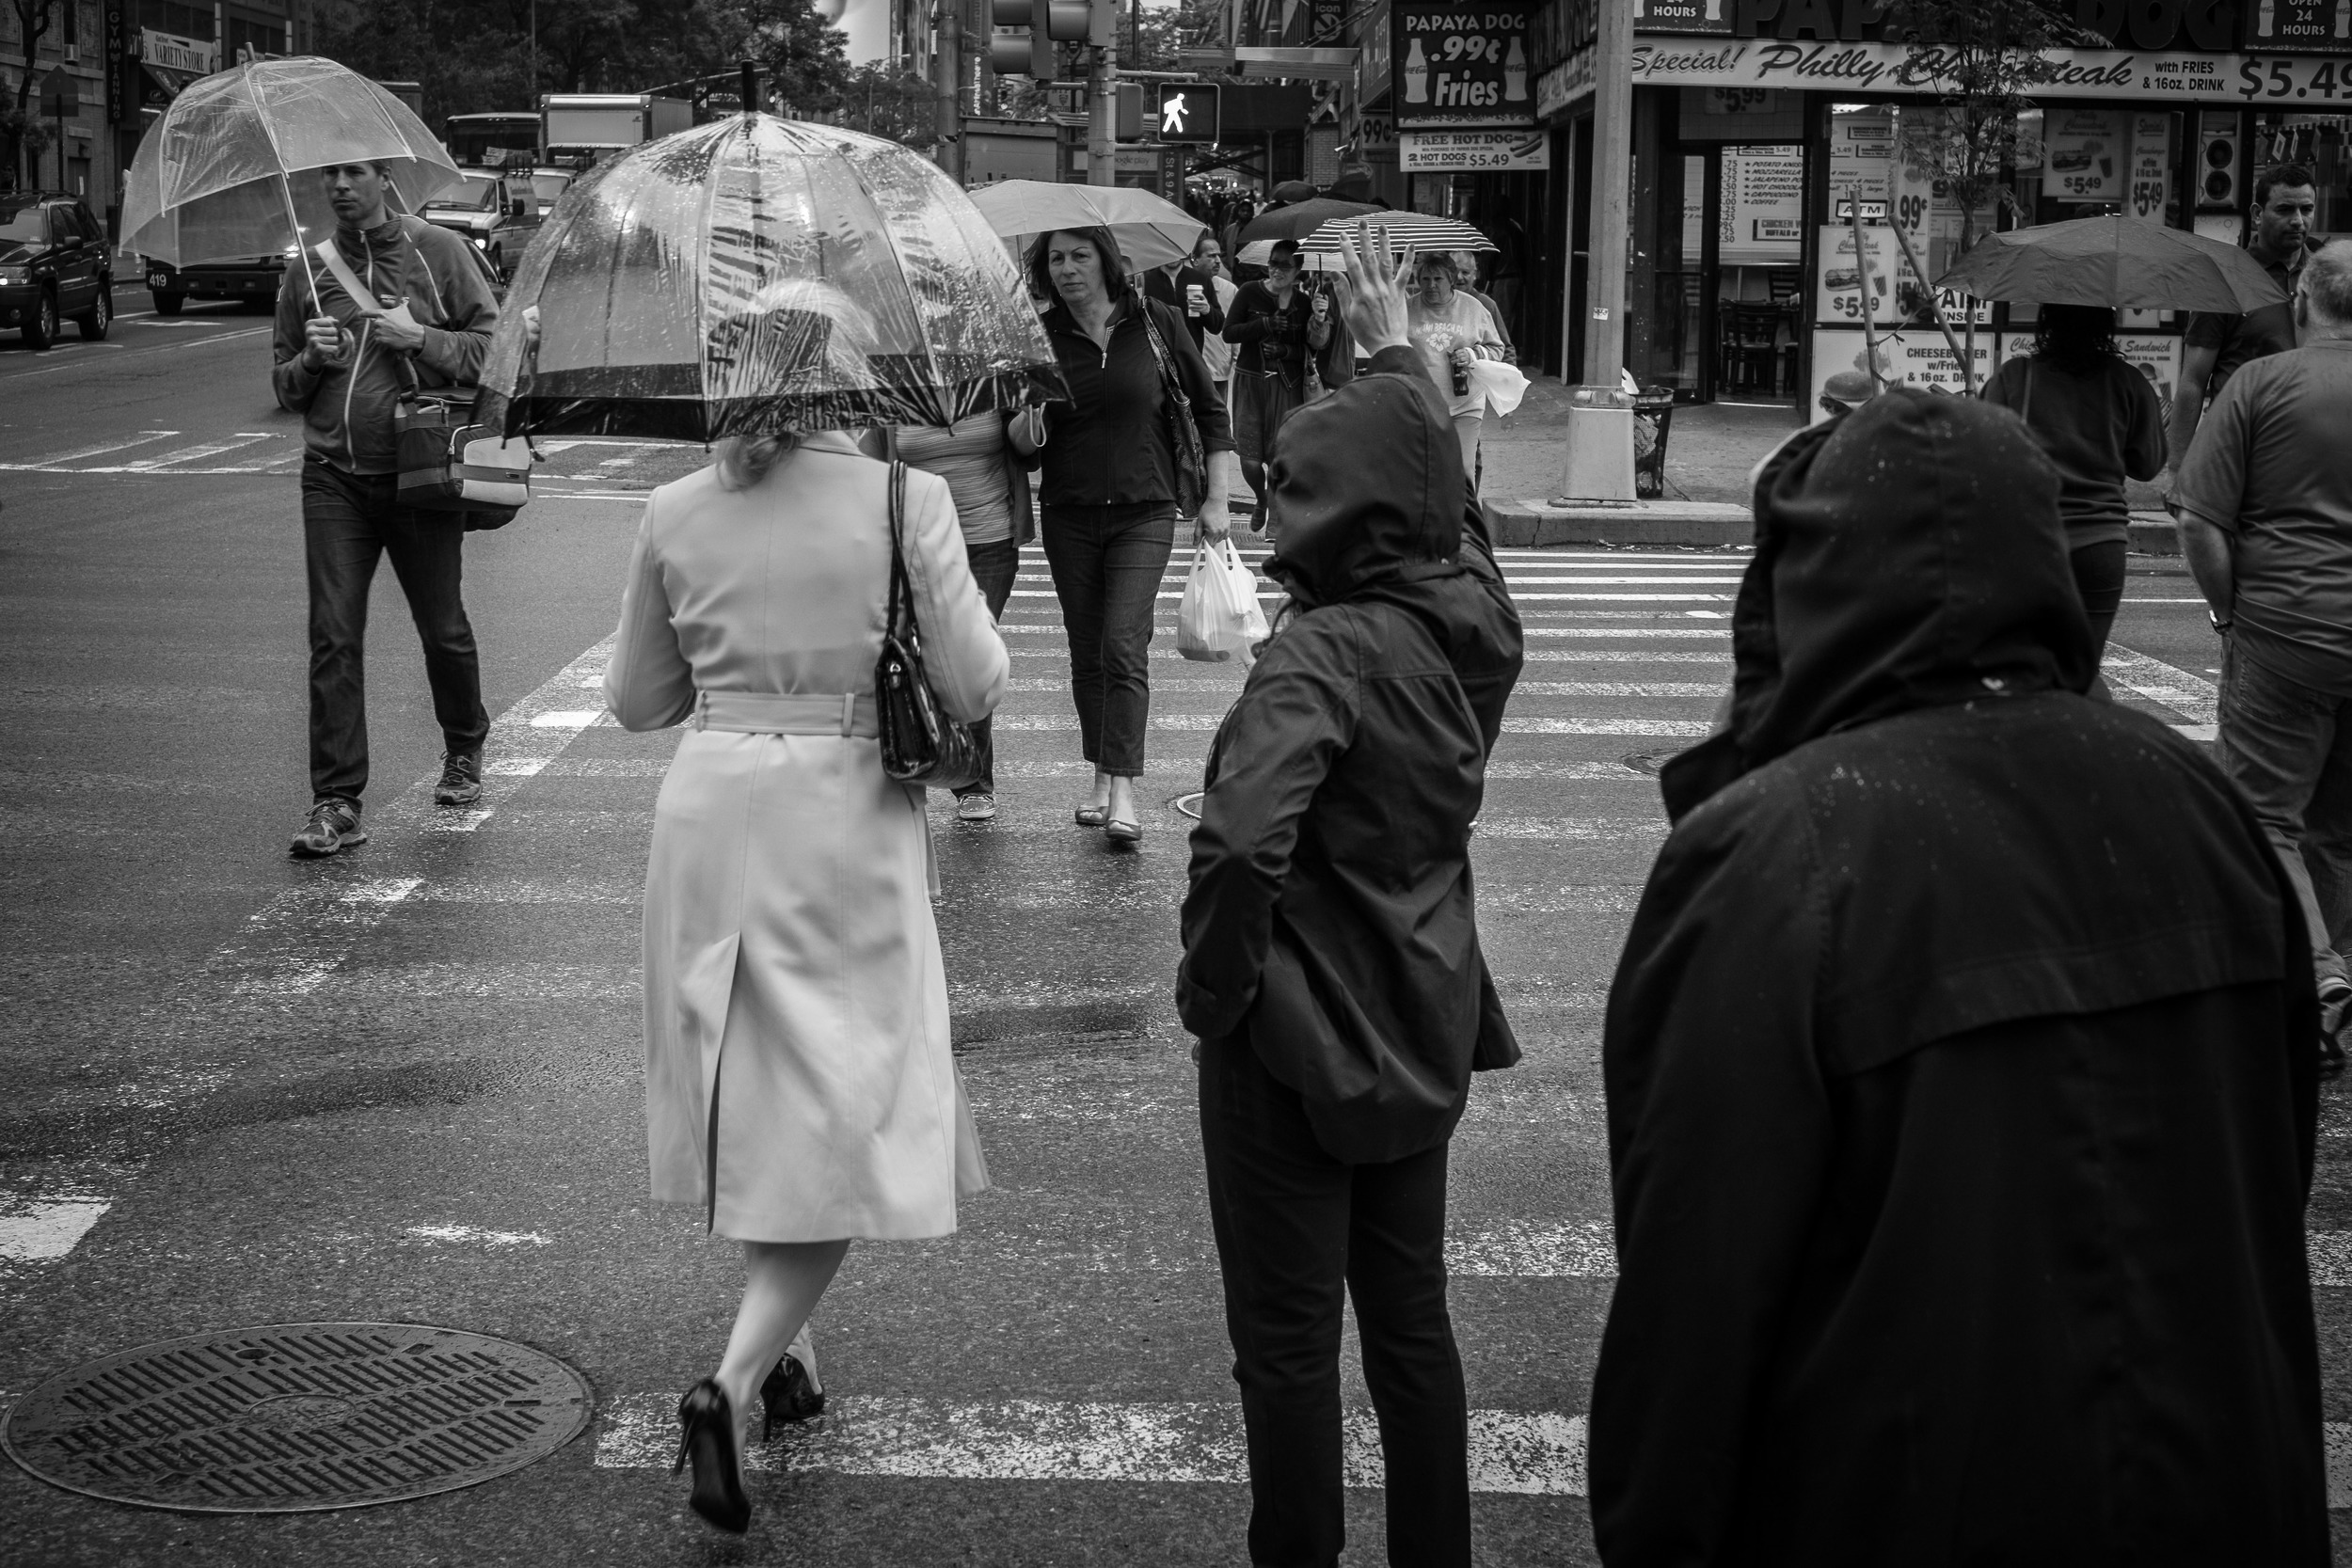 A little bit of rain didn't bother the X-Pro1,but did offer some nice scenes to photograph. When shooting on the streets in large cities, I find crosswalks and street corners offer plenty of opportunities. 1/125, f5.6 at ISO 640.